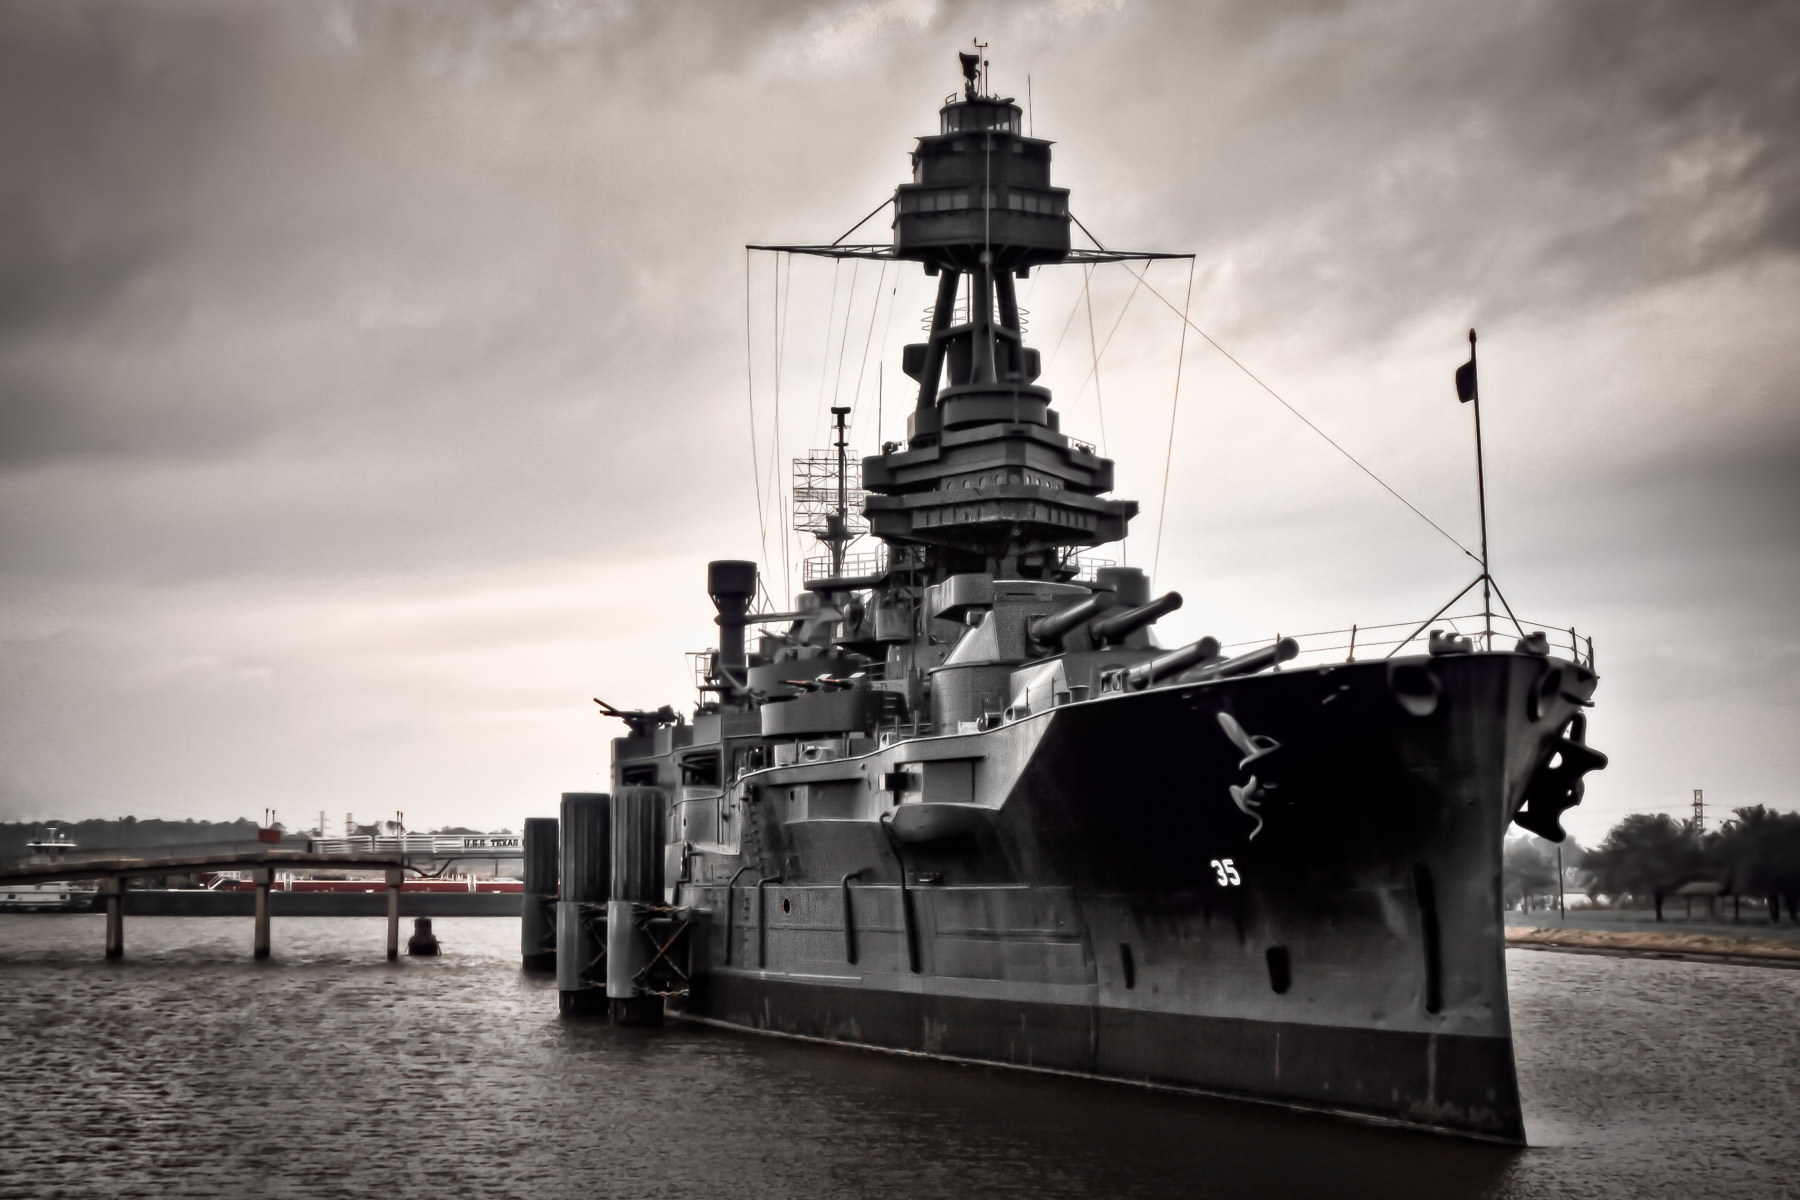 The USS Texas, commissioned in 1914, saw action in both World Wars, including D-Day and at Iwo Jima. After being decommissioned in 1947, she was permanently moored adjacent to the Houston Ship Channel near the San Jacinto Monument to act as a museum ship.